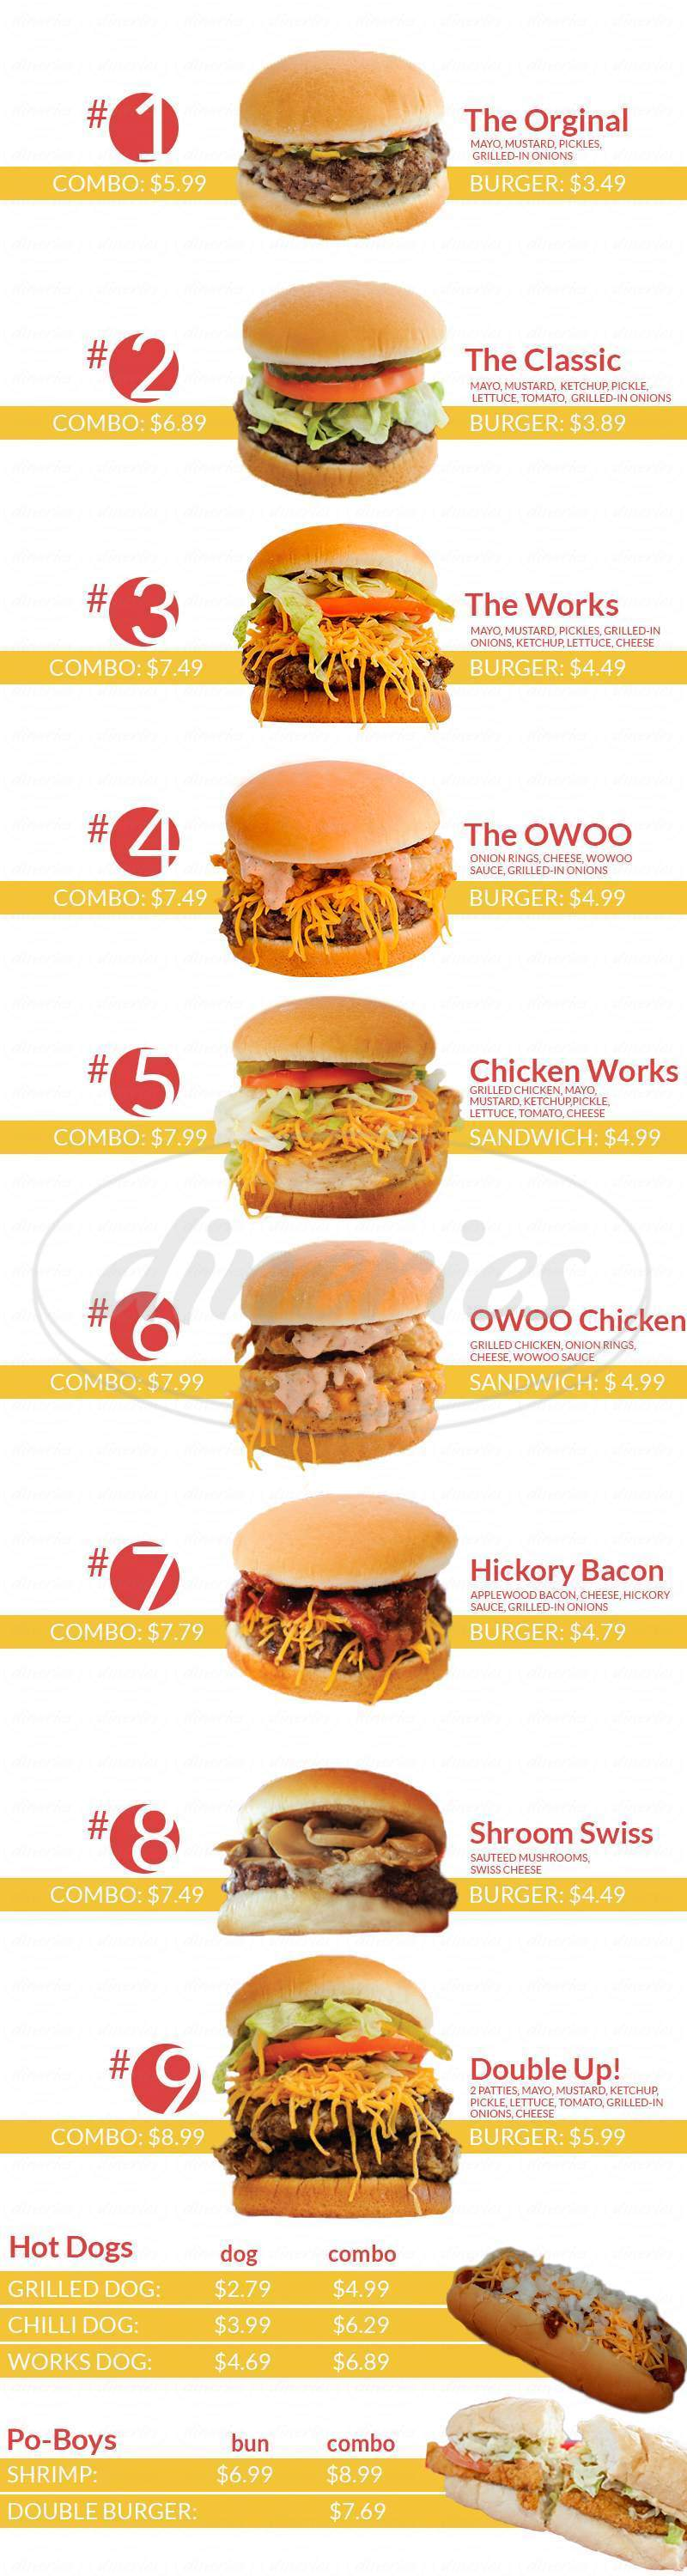 menu for Lee's Hamburgers